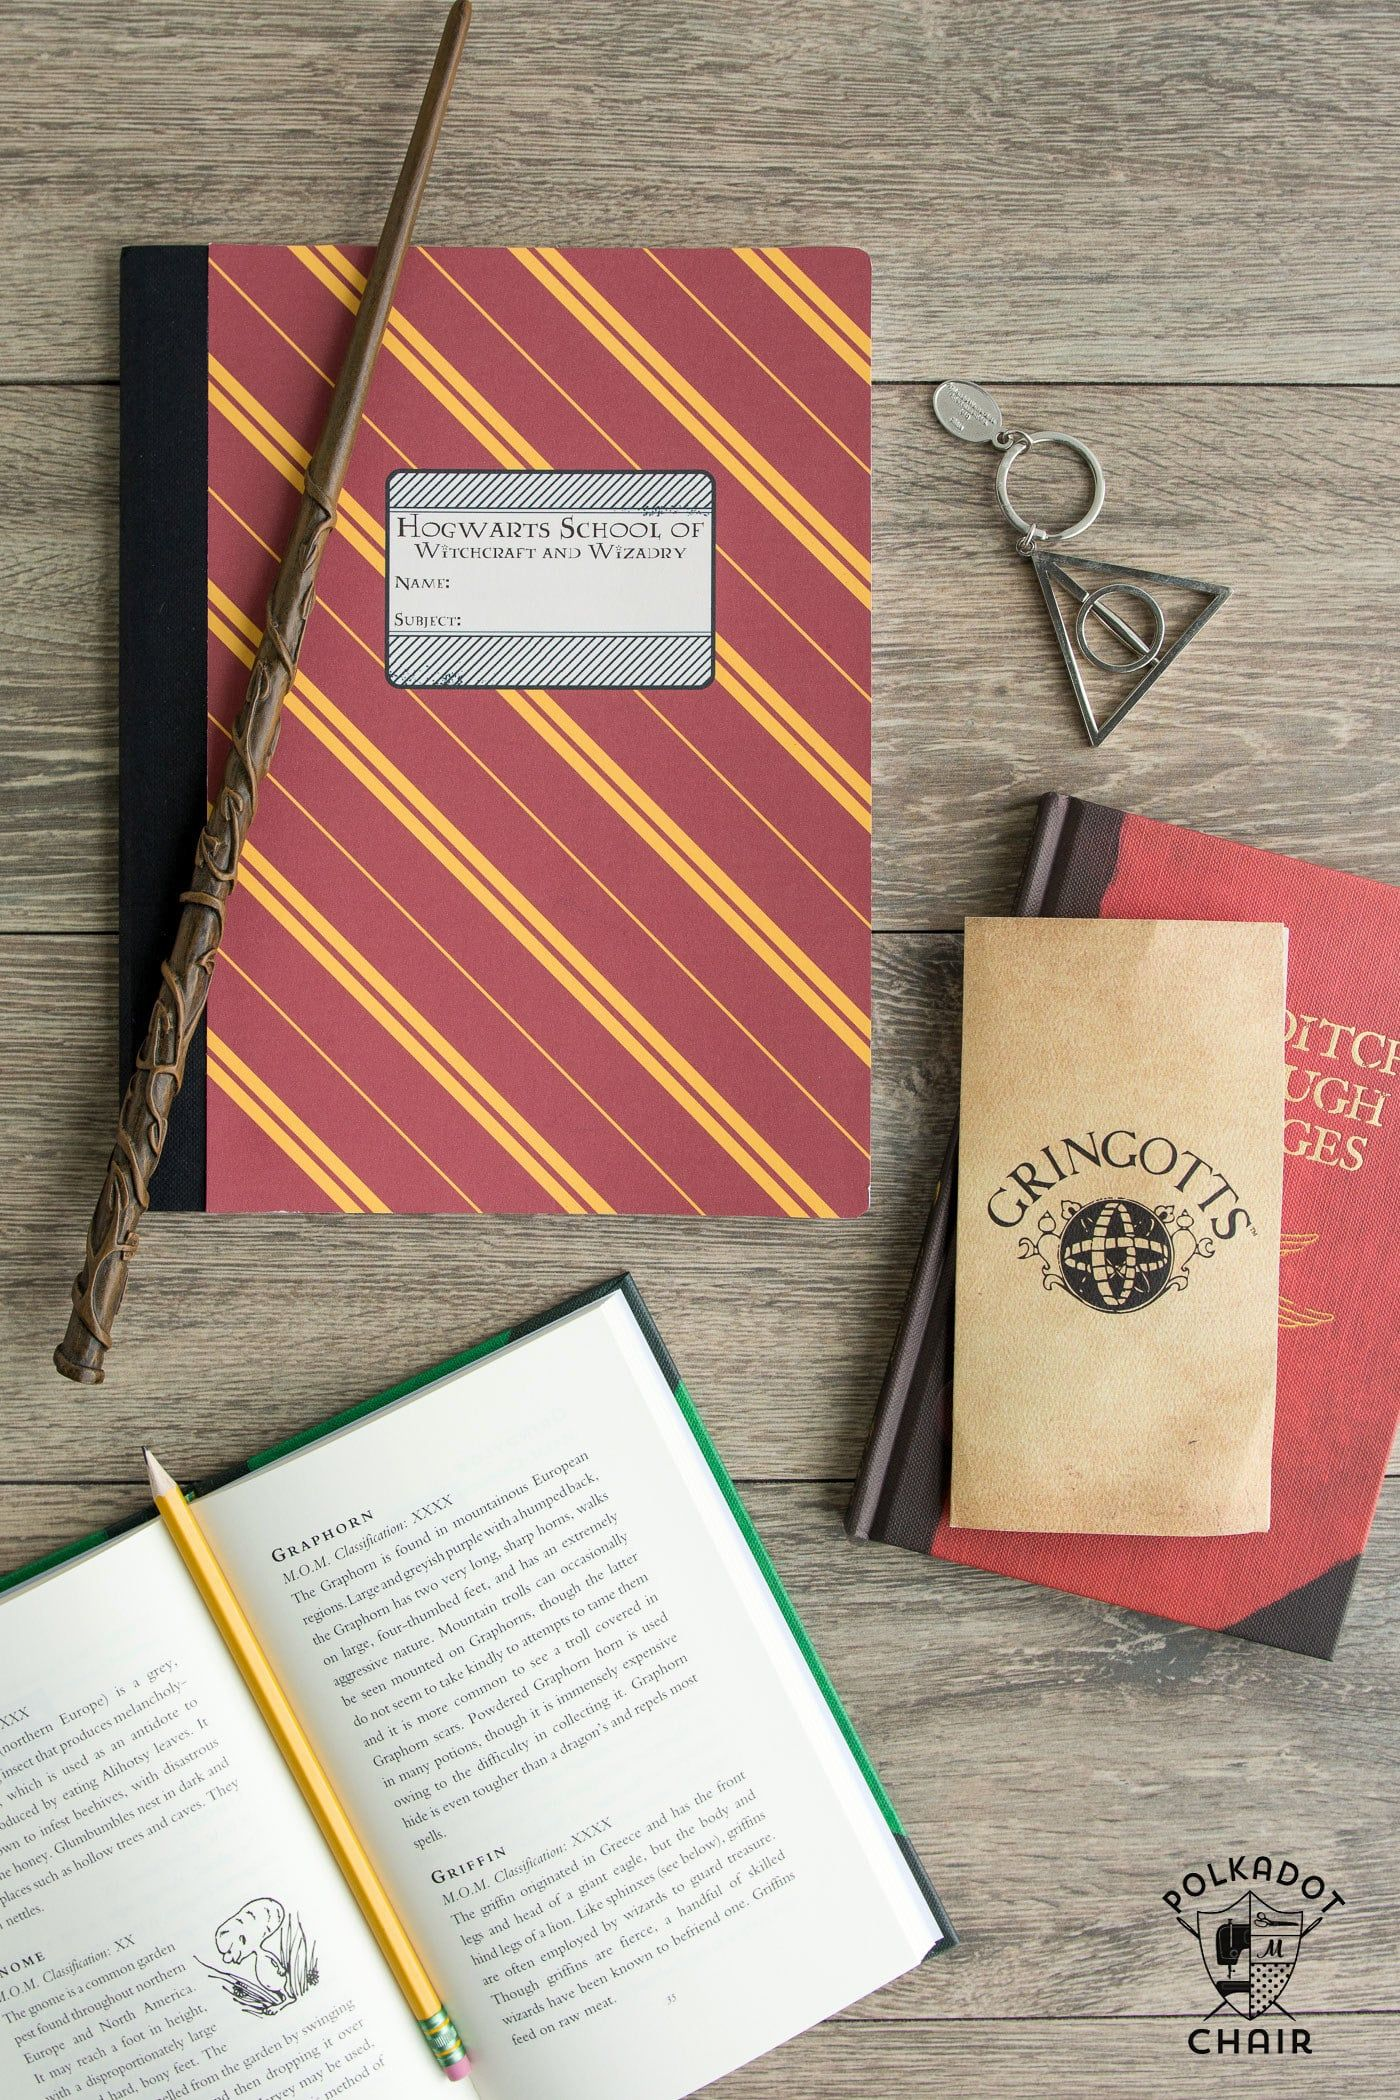 27 Magical Ways To Make School Seem More Like Hogwarts